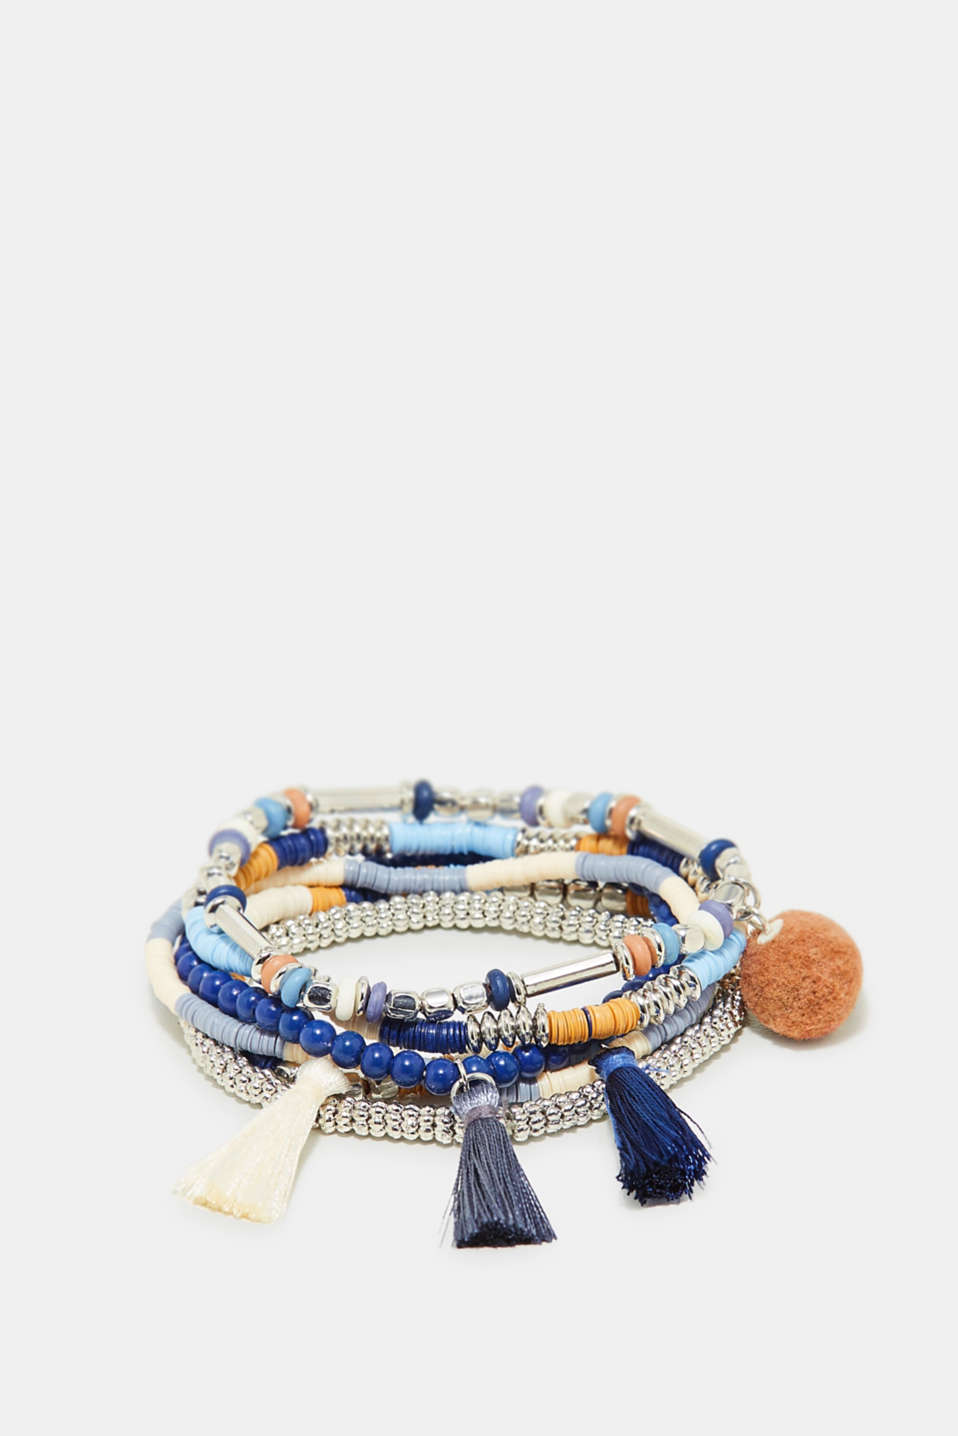 Esprit - Set of beads bracelets with tassels